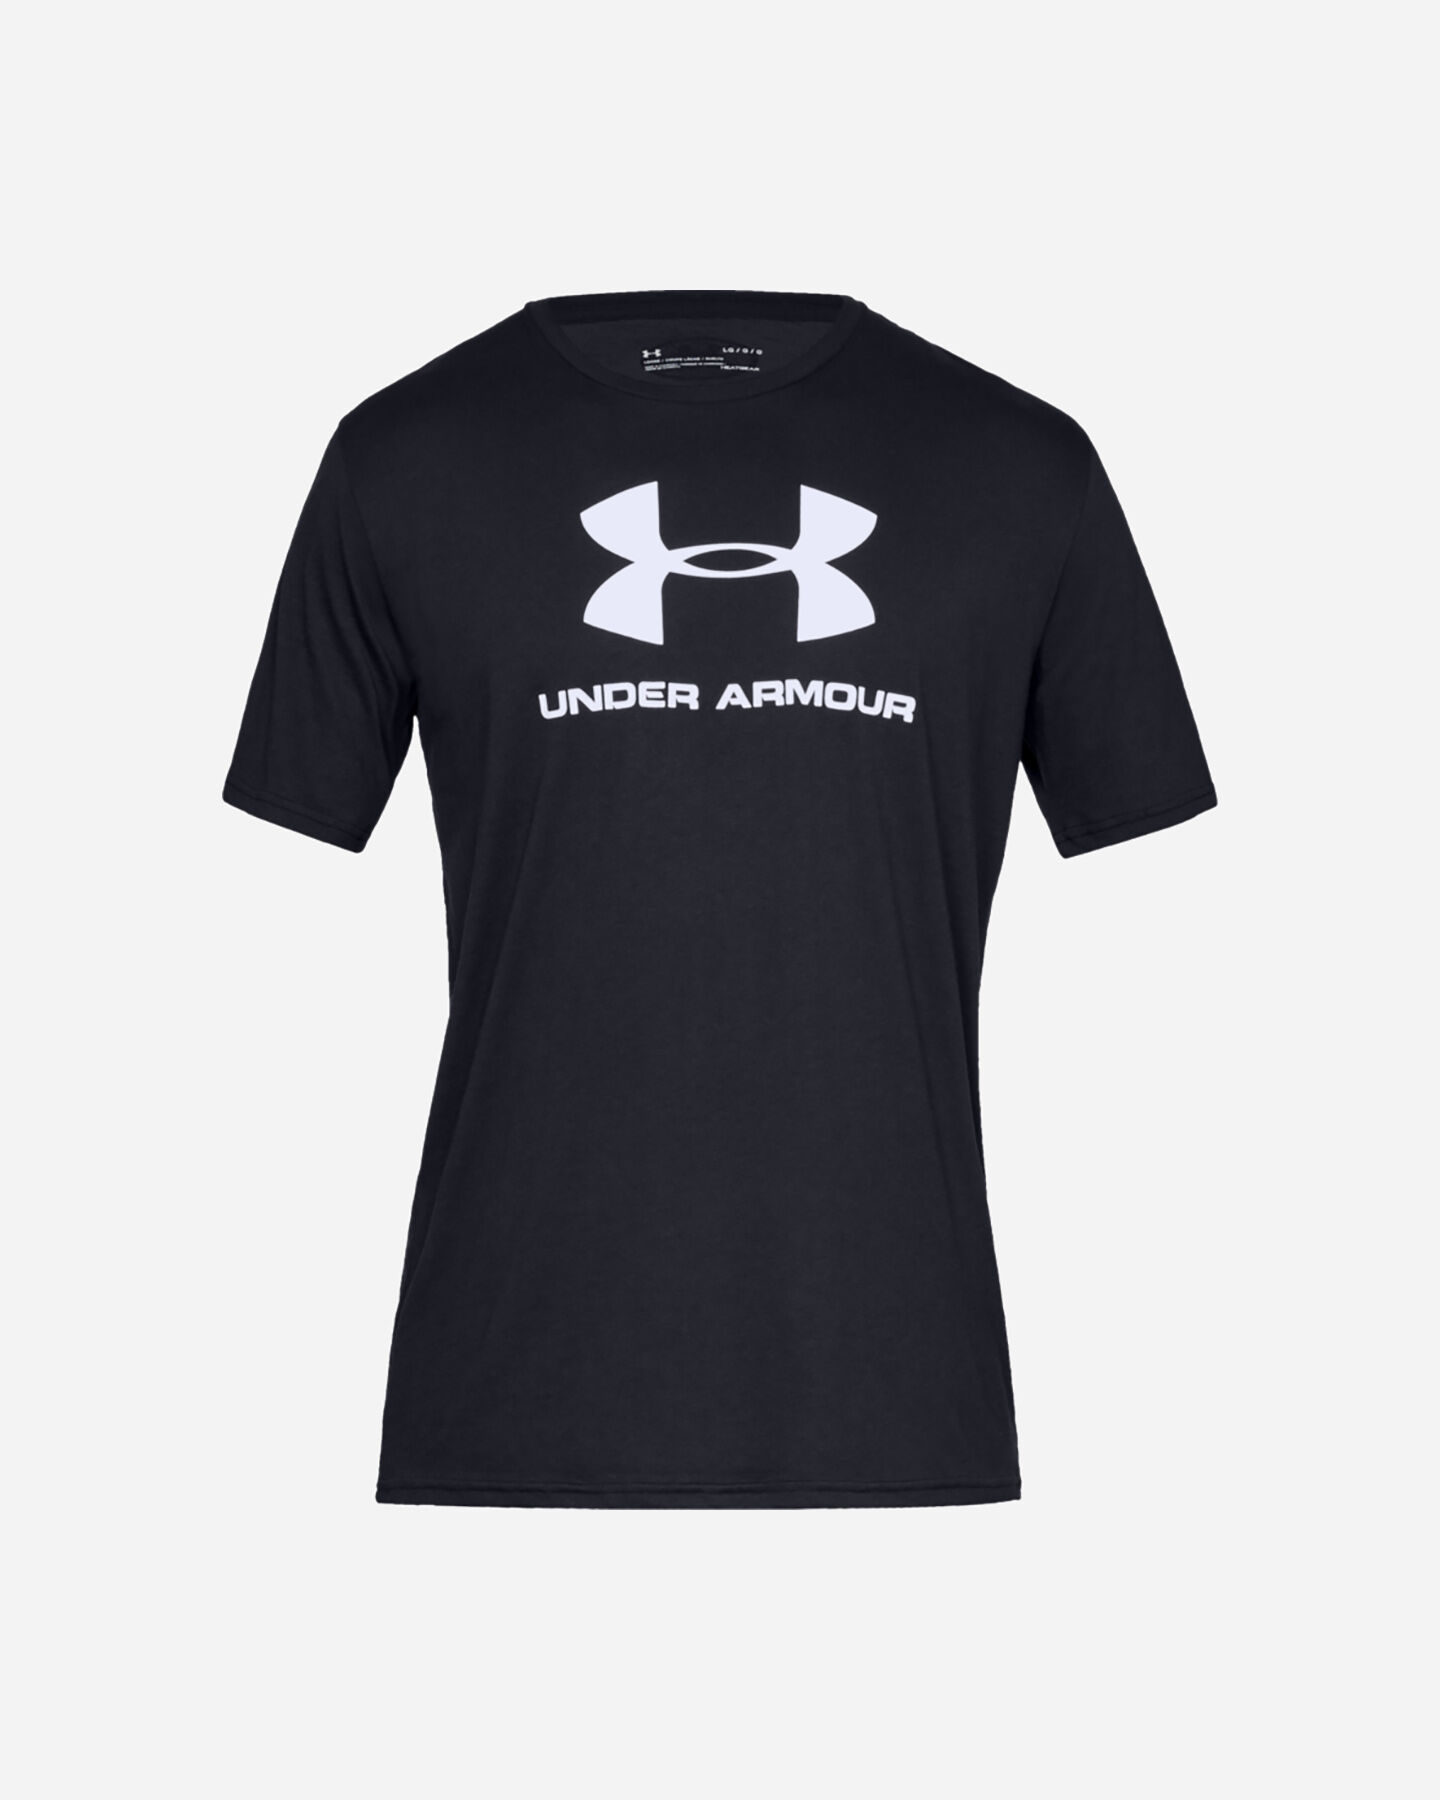 T-Shirt UNDER ARMOUR BIG LOGO M S5035486 scatto 0